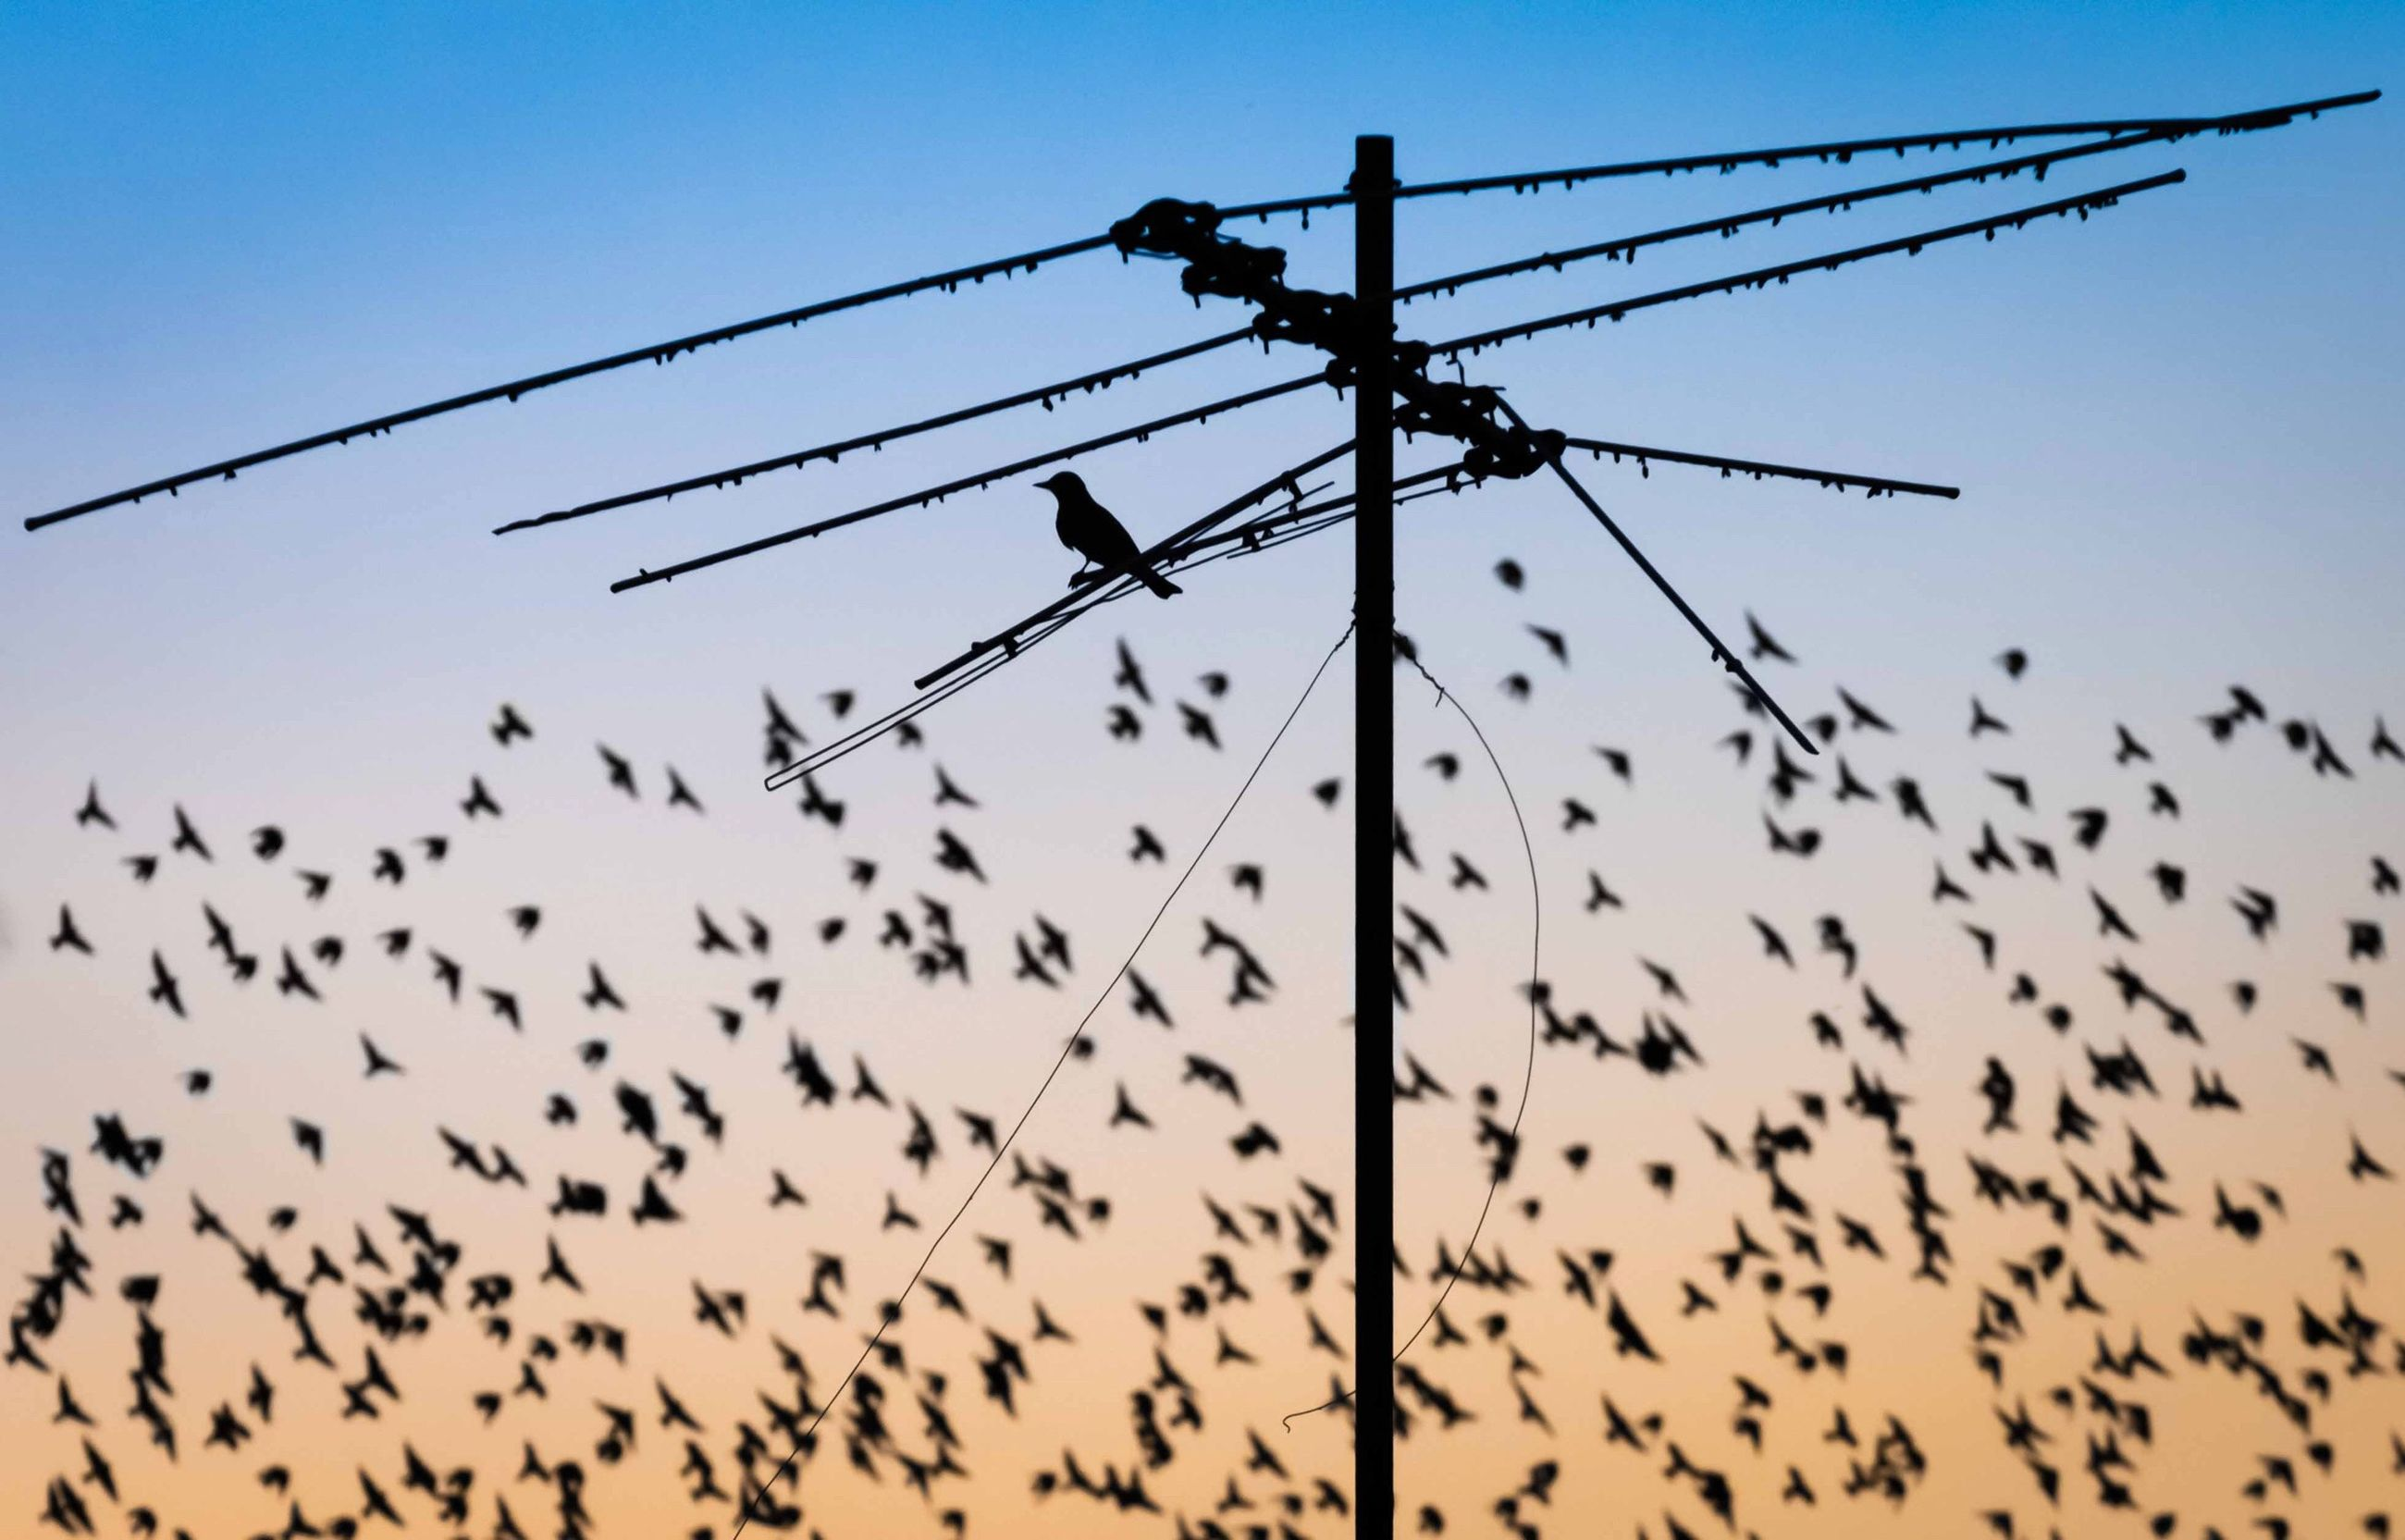 low angle view, animal wildlife, sky, large group of animals, animals in the wild, group of animals, animal, animal themes, bird, vertebrate, flying, no people, clear sky, nature, sunset, silhouette, cable, flock of birds, technology, electricity, outdoors, power supply